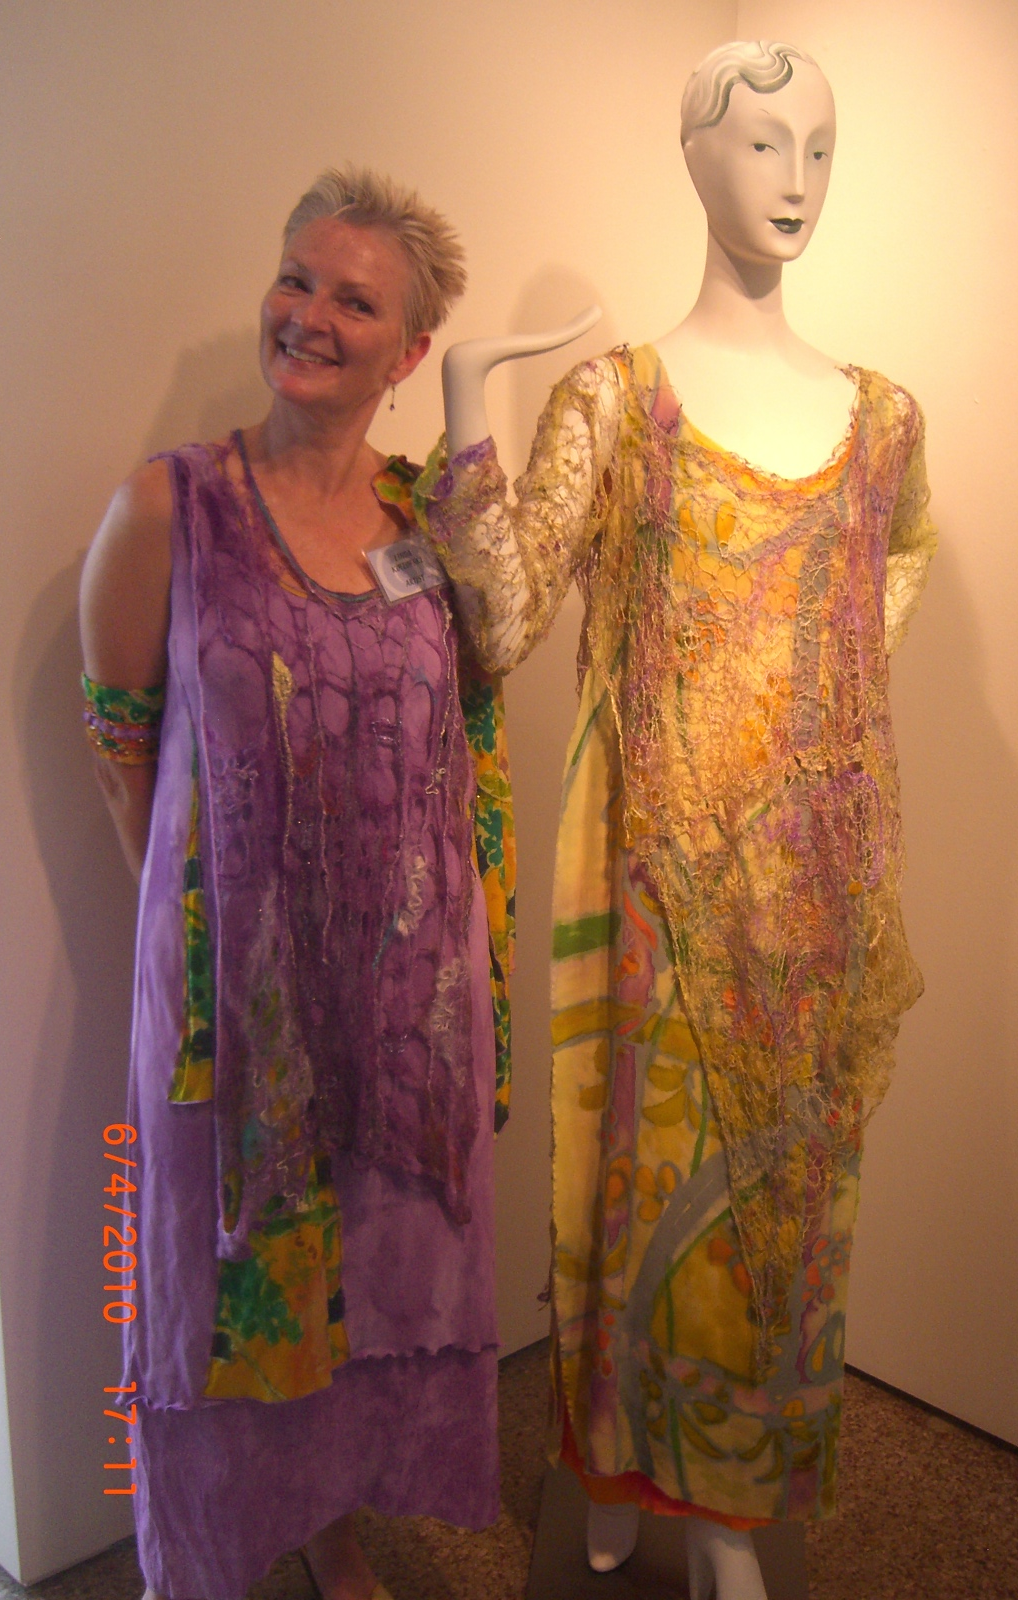 """This is me at my first juried show in 2010, 'Inside Out', with my piece """"Inner Journey Soul Image'. This exhibition featured works of art that covered the physical form, yet revealed the soul of the artist. These pieces were hand painted, hand felted, and machine embroidered."""